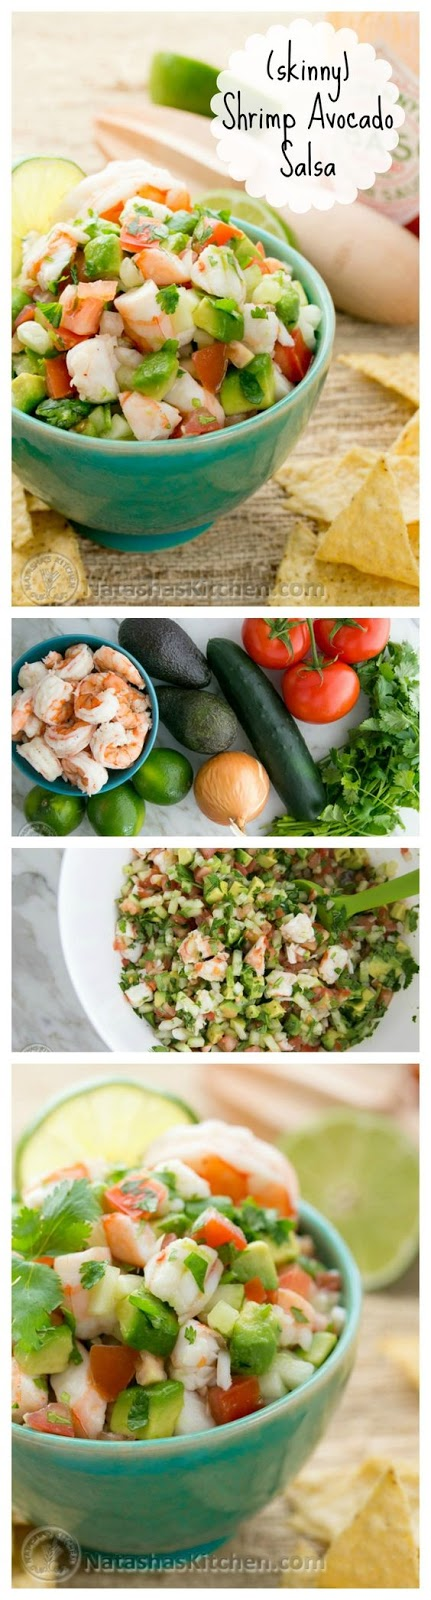 Shrimp Avocado Salsa Recipe